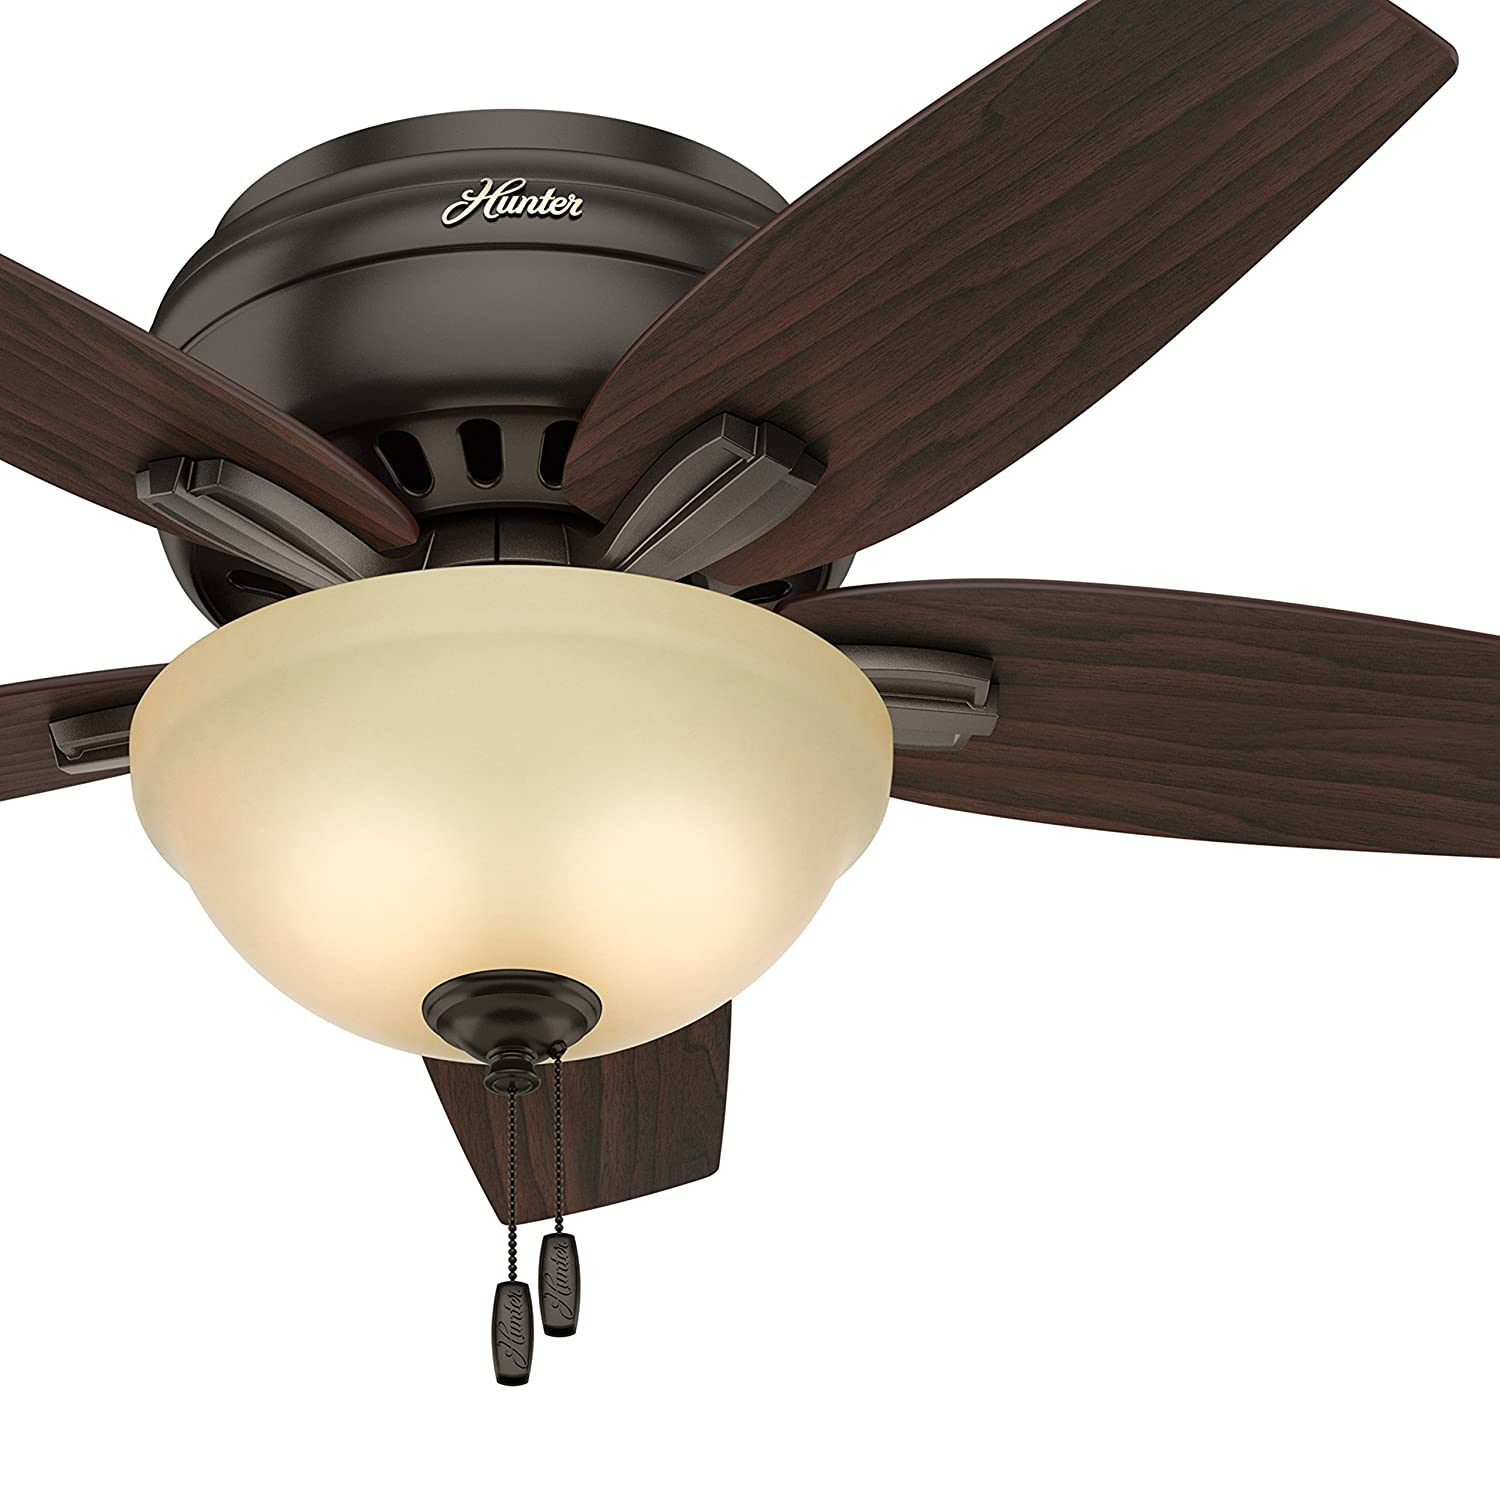 Hunter Fan 42 inch Low Profile Premier Bronze Indoor Ceiling Fan with Light Kit and Remote Control Renewed